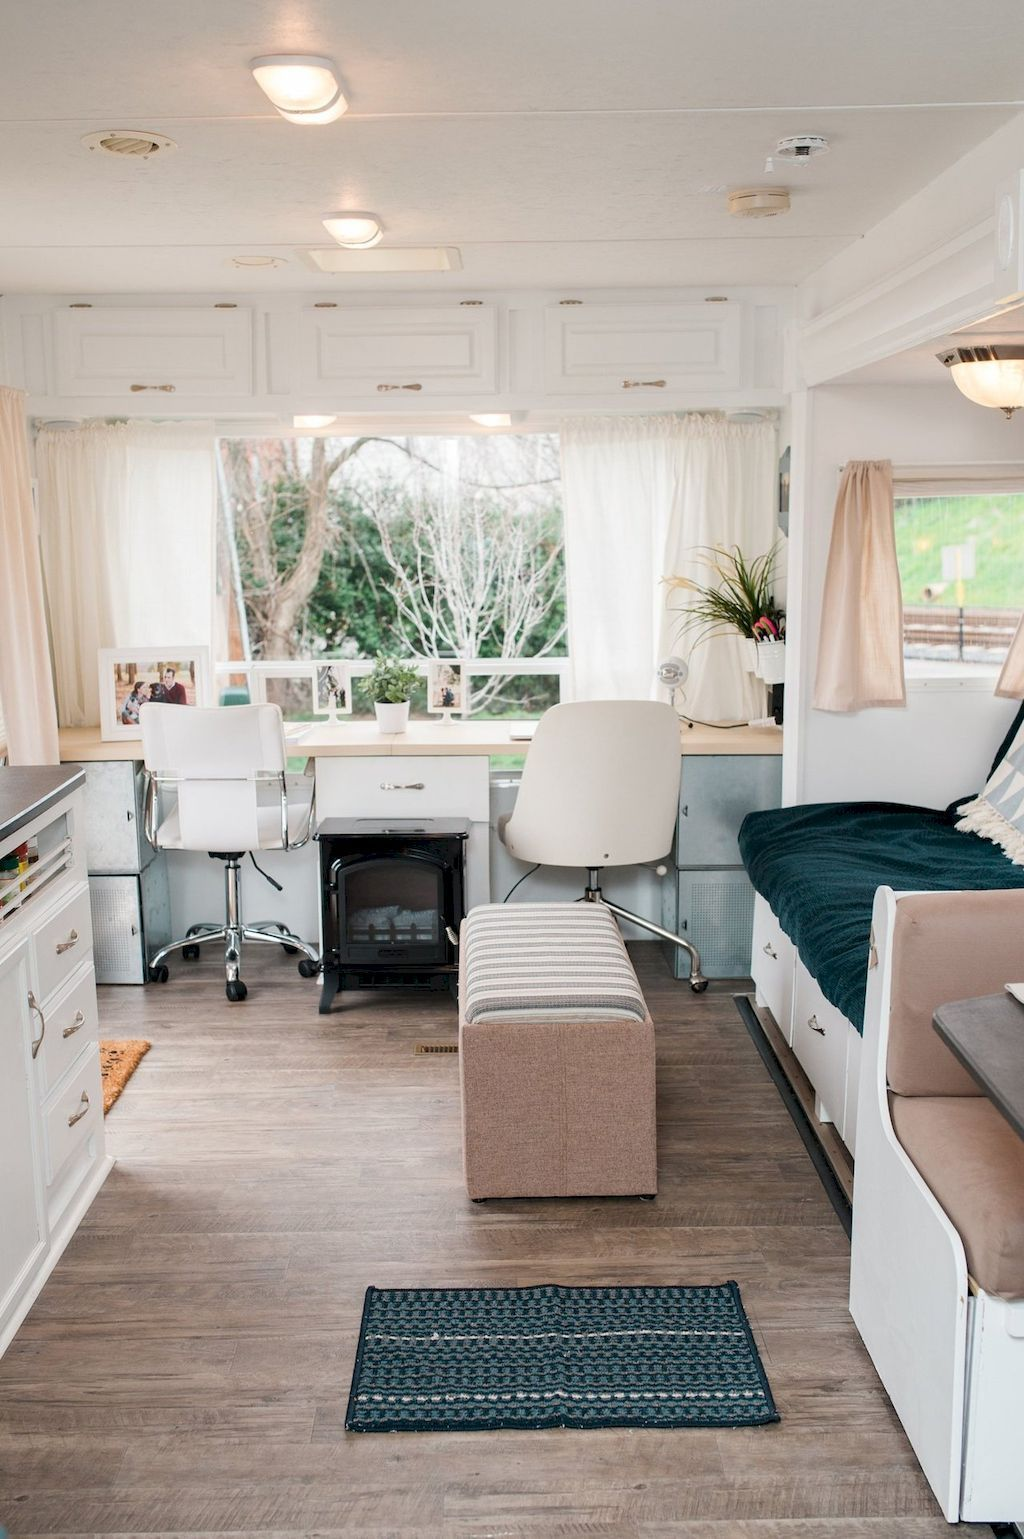 90 modern rv remodel travel trailers ideas 87 rv s tips